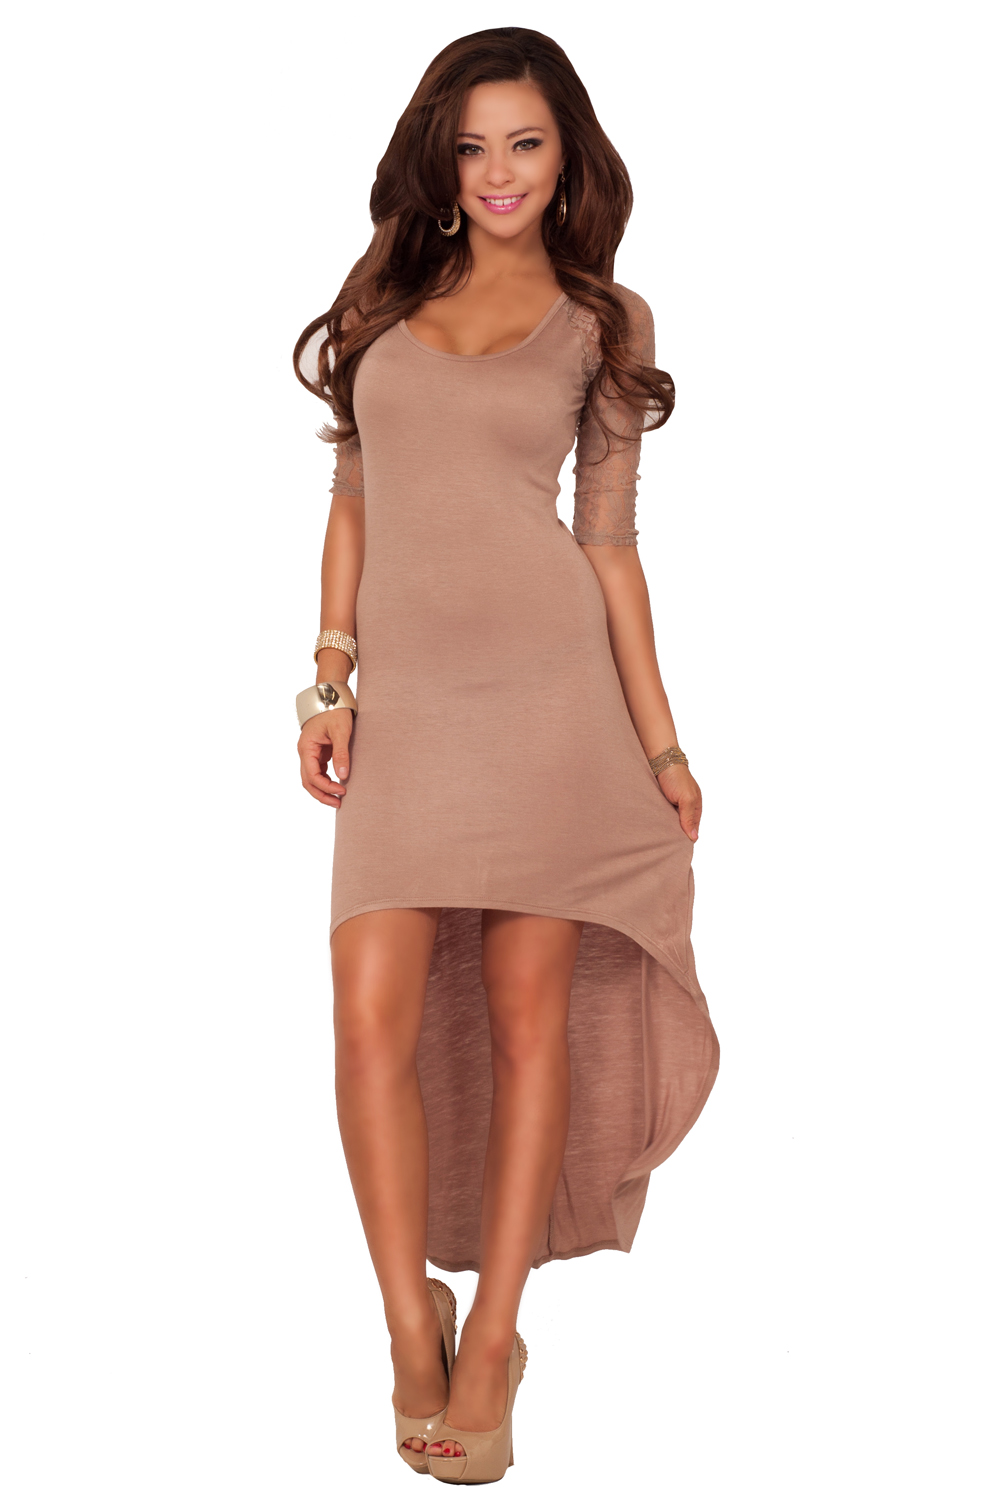 high low dresses casual lace - photo #17